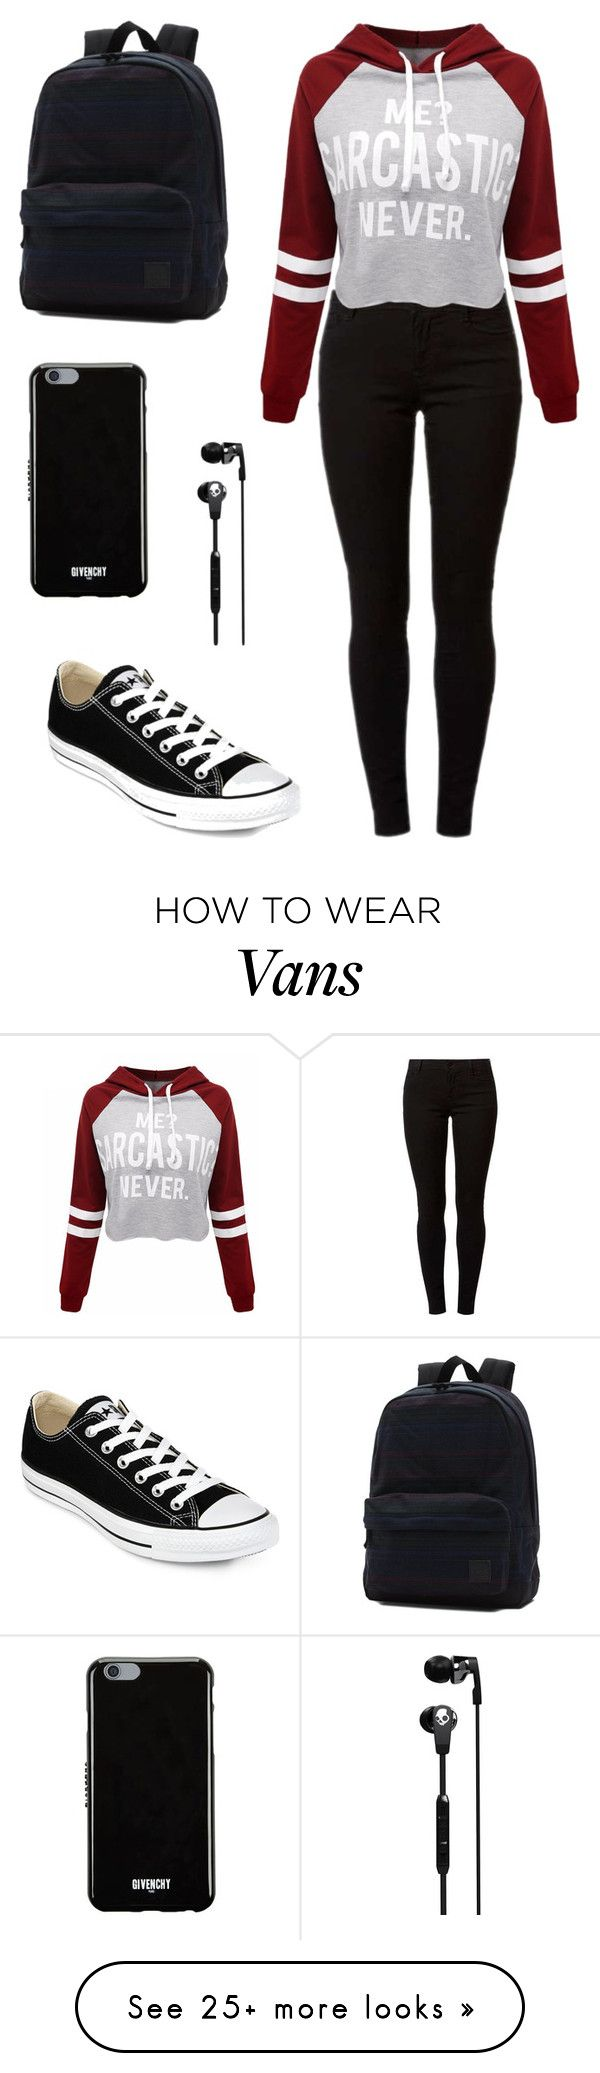 """Untitled #5"" by amela-ella-hodzic on Polyvore featuring Dorothy Perkins, WithChic, Converse, Vans, Skullcandy and Givenchy"